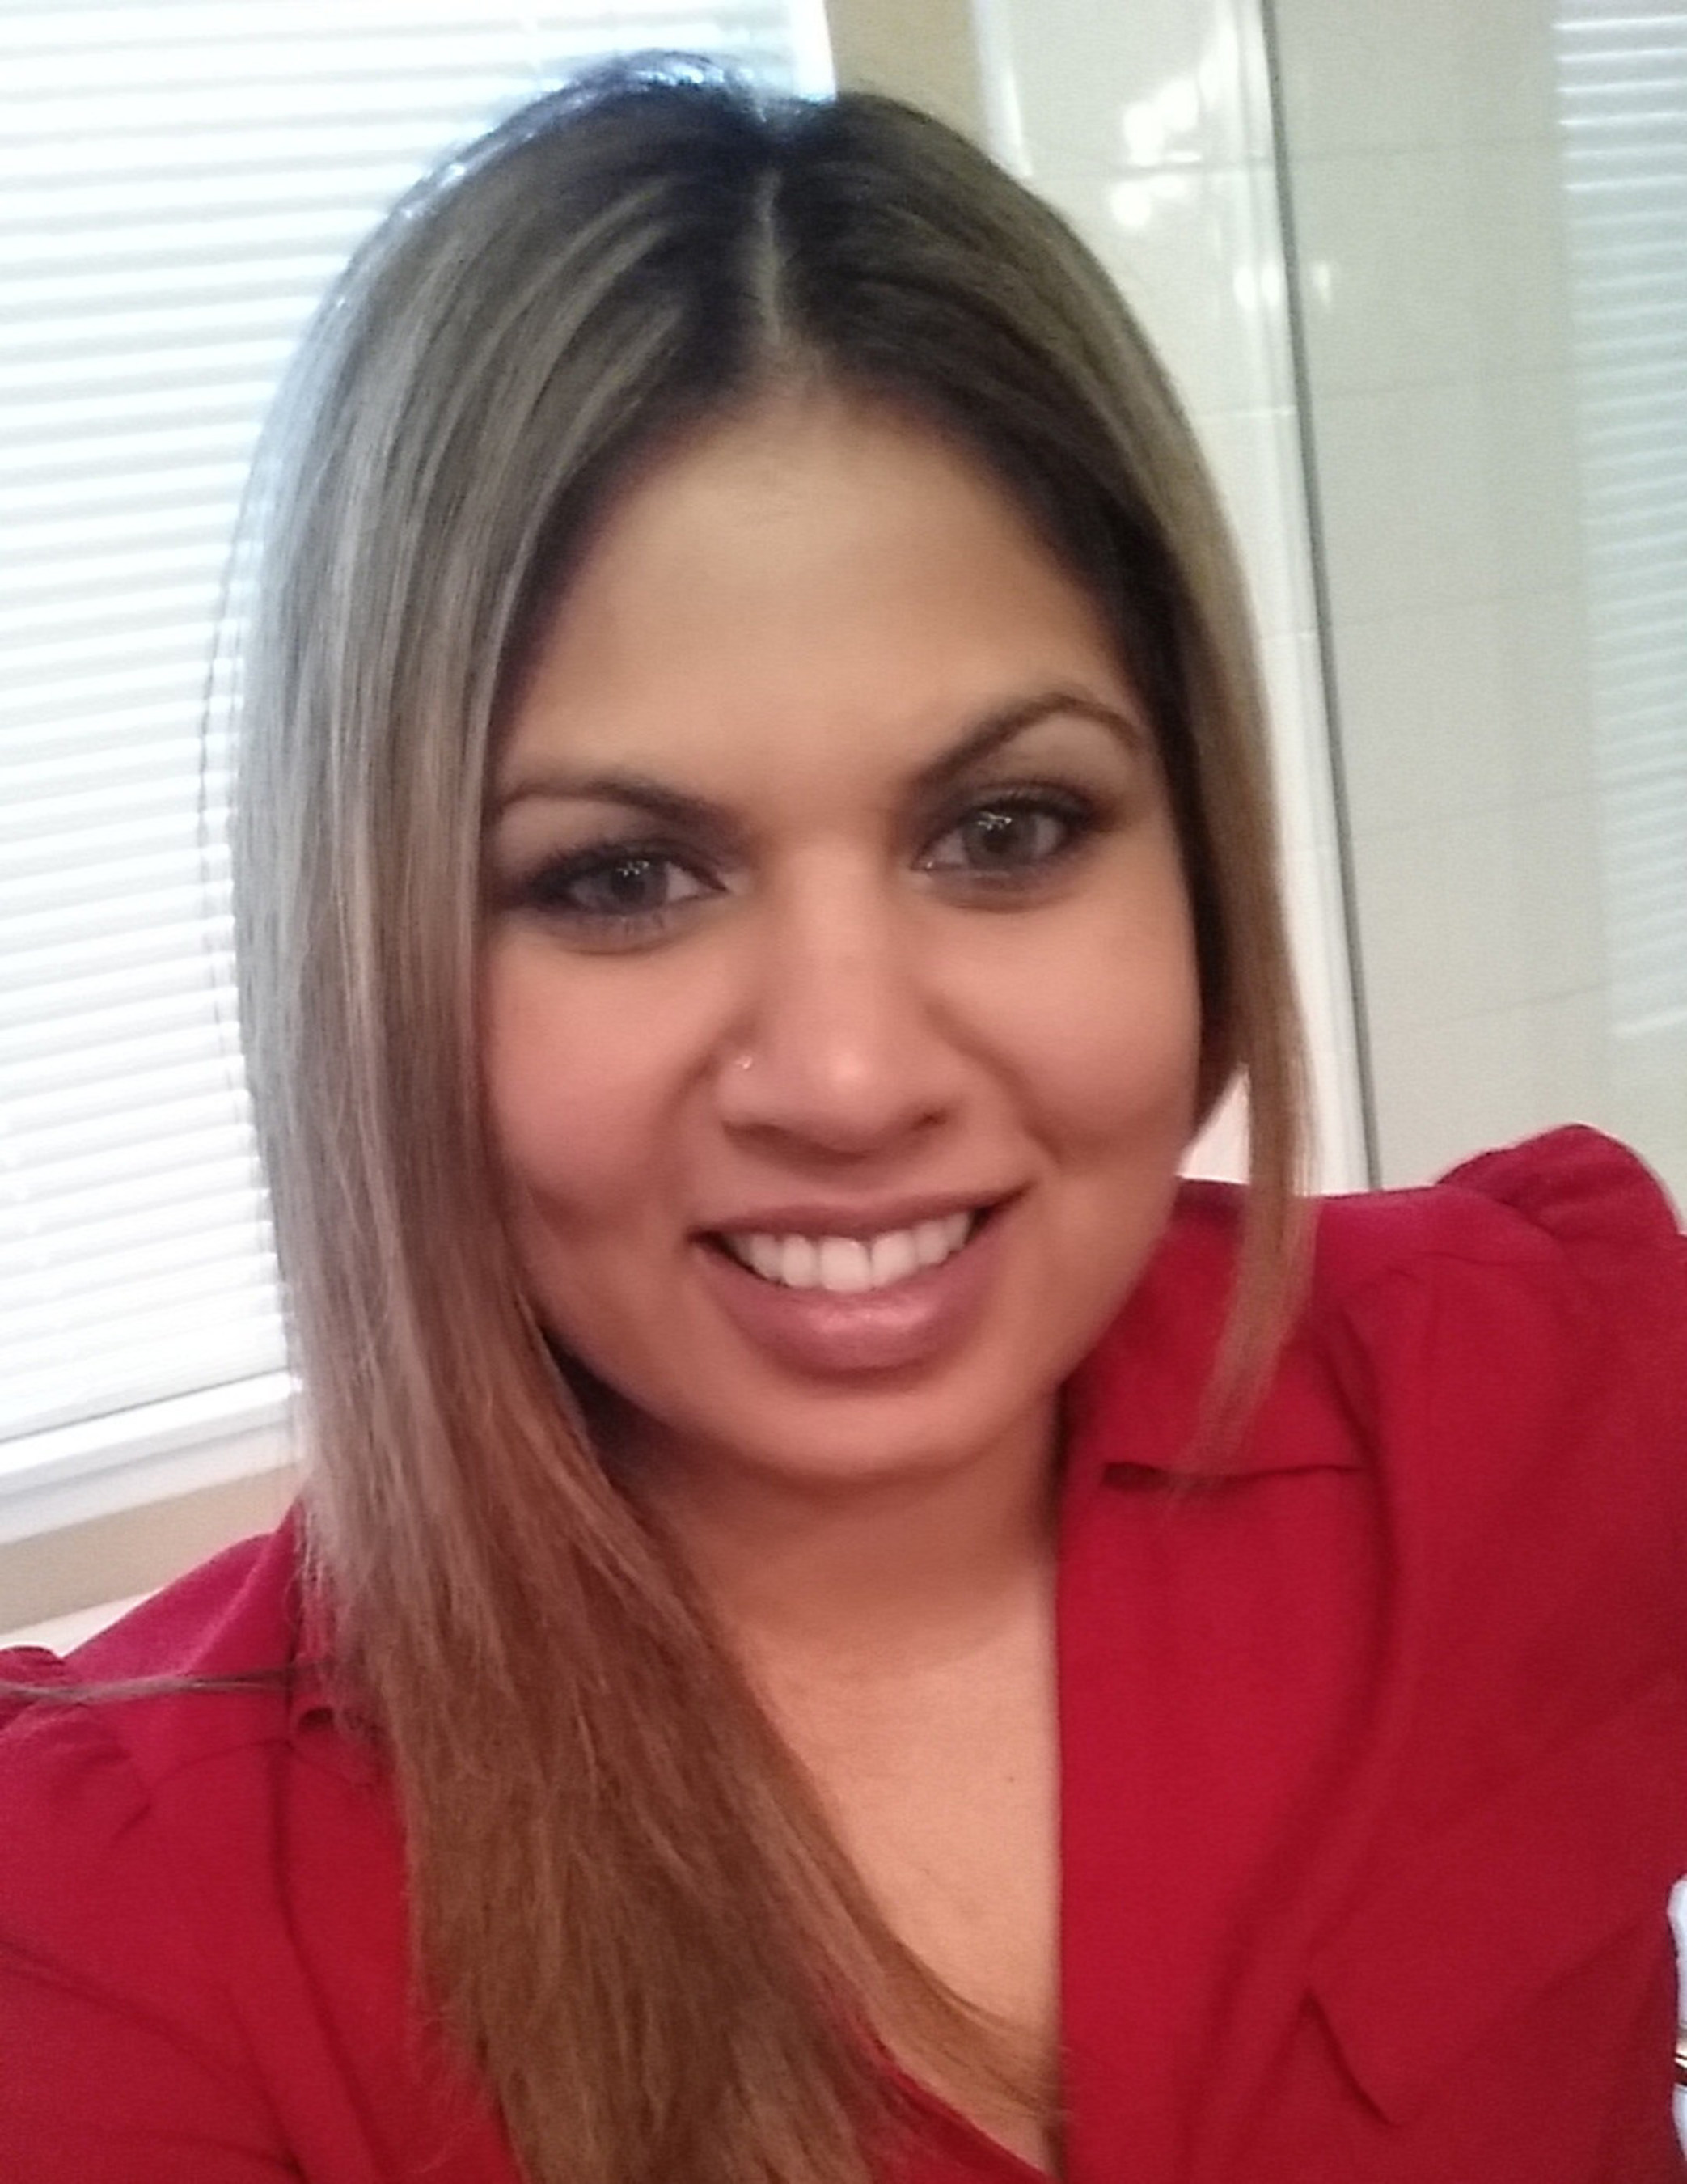 Epsilon Electronics Inc Welcomes Amber Omran As National Sales Manager To Our Sister Brands NESA And VST